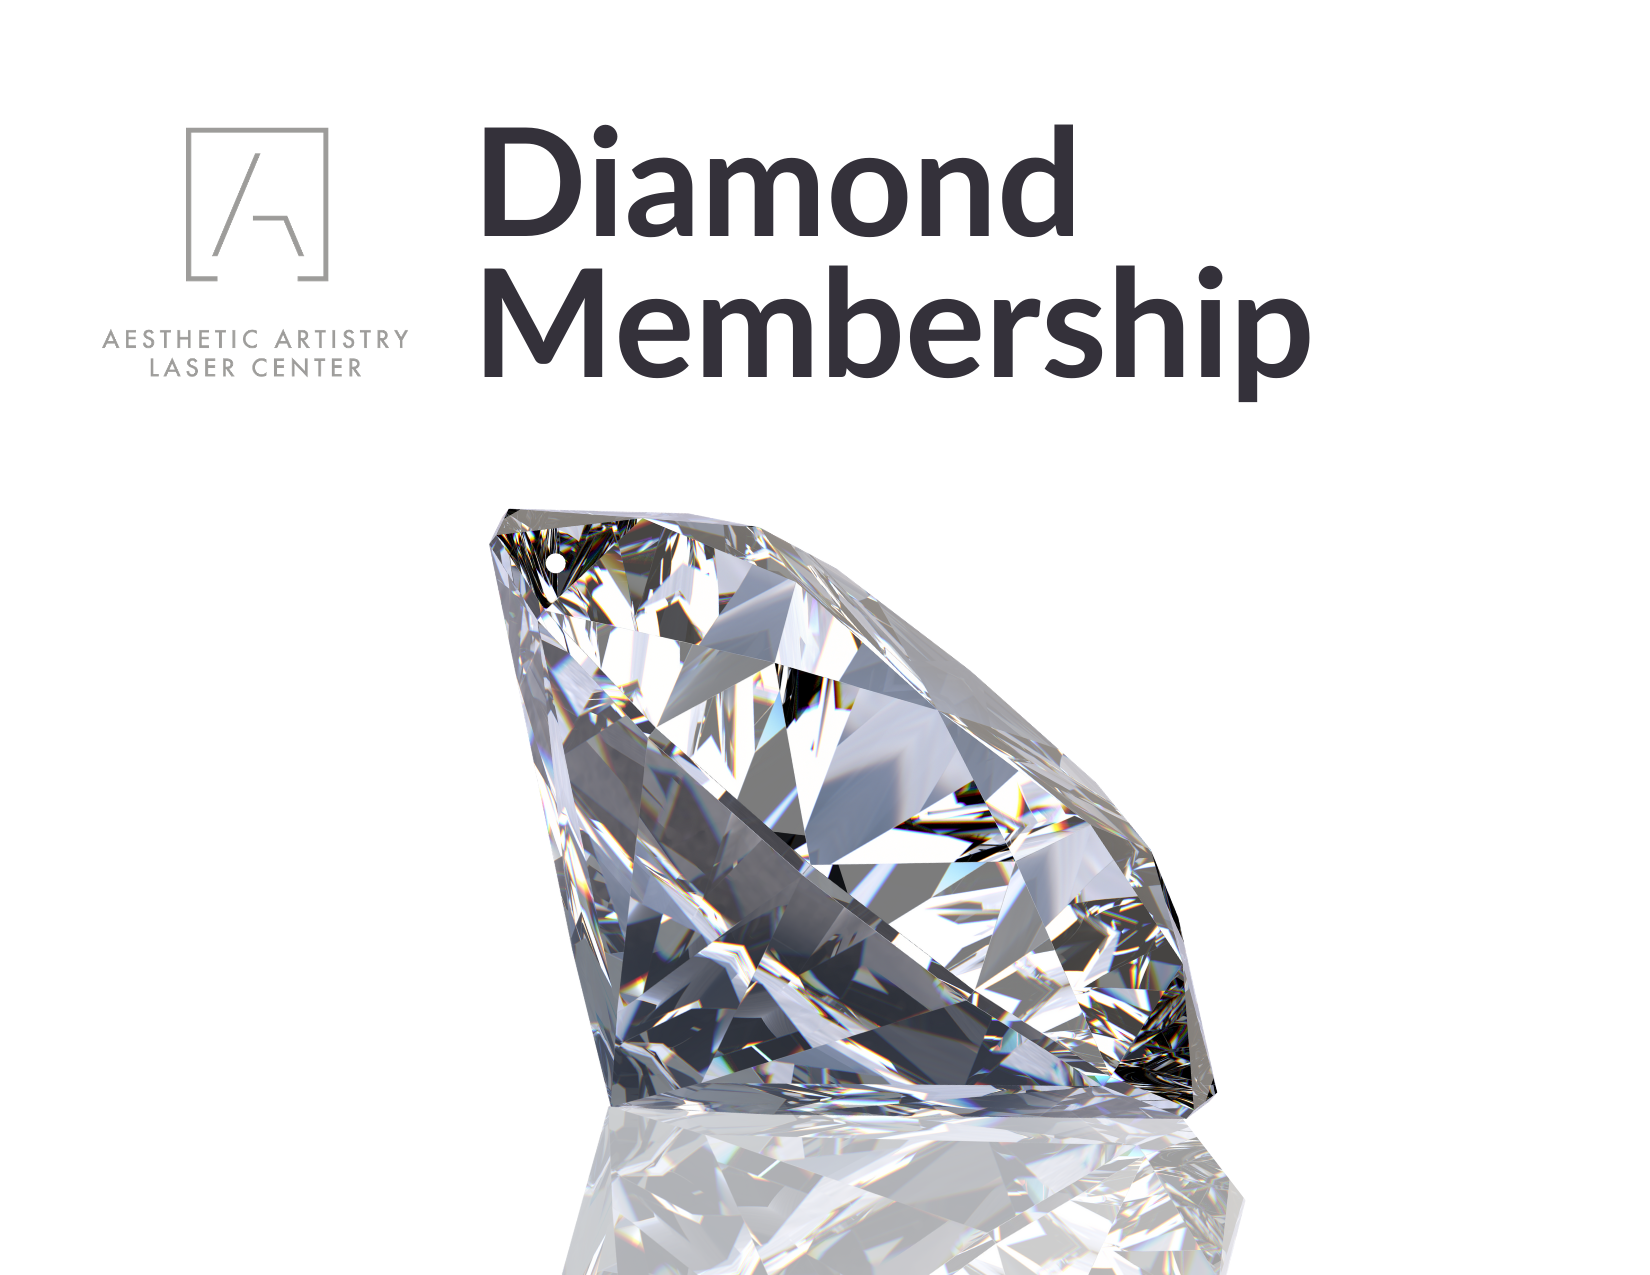 AALC Membership Club Diamond Membership